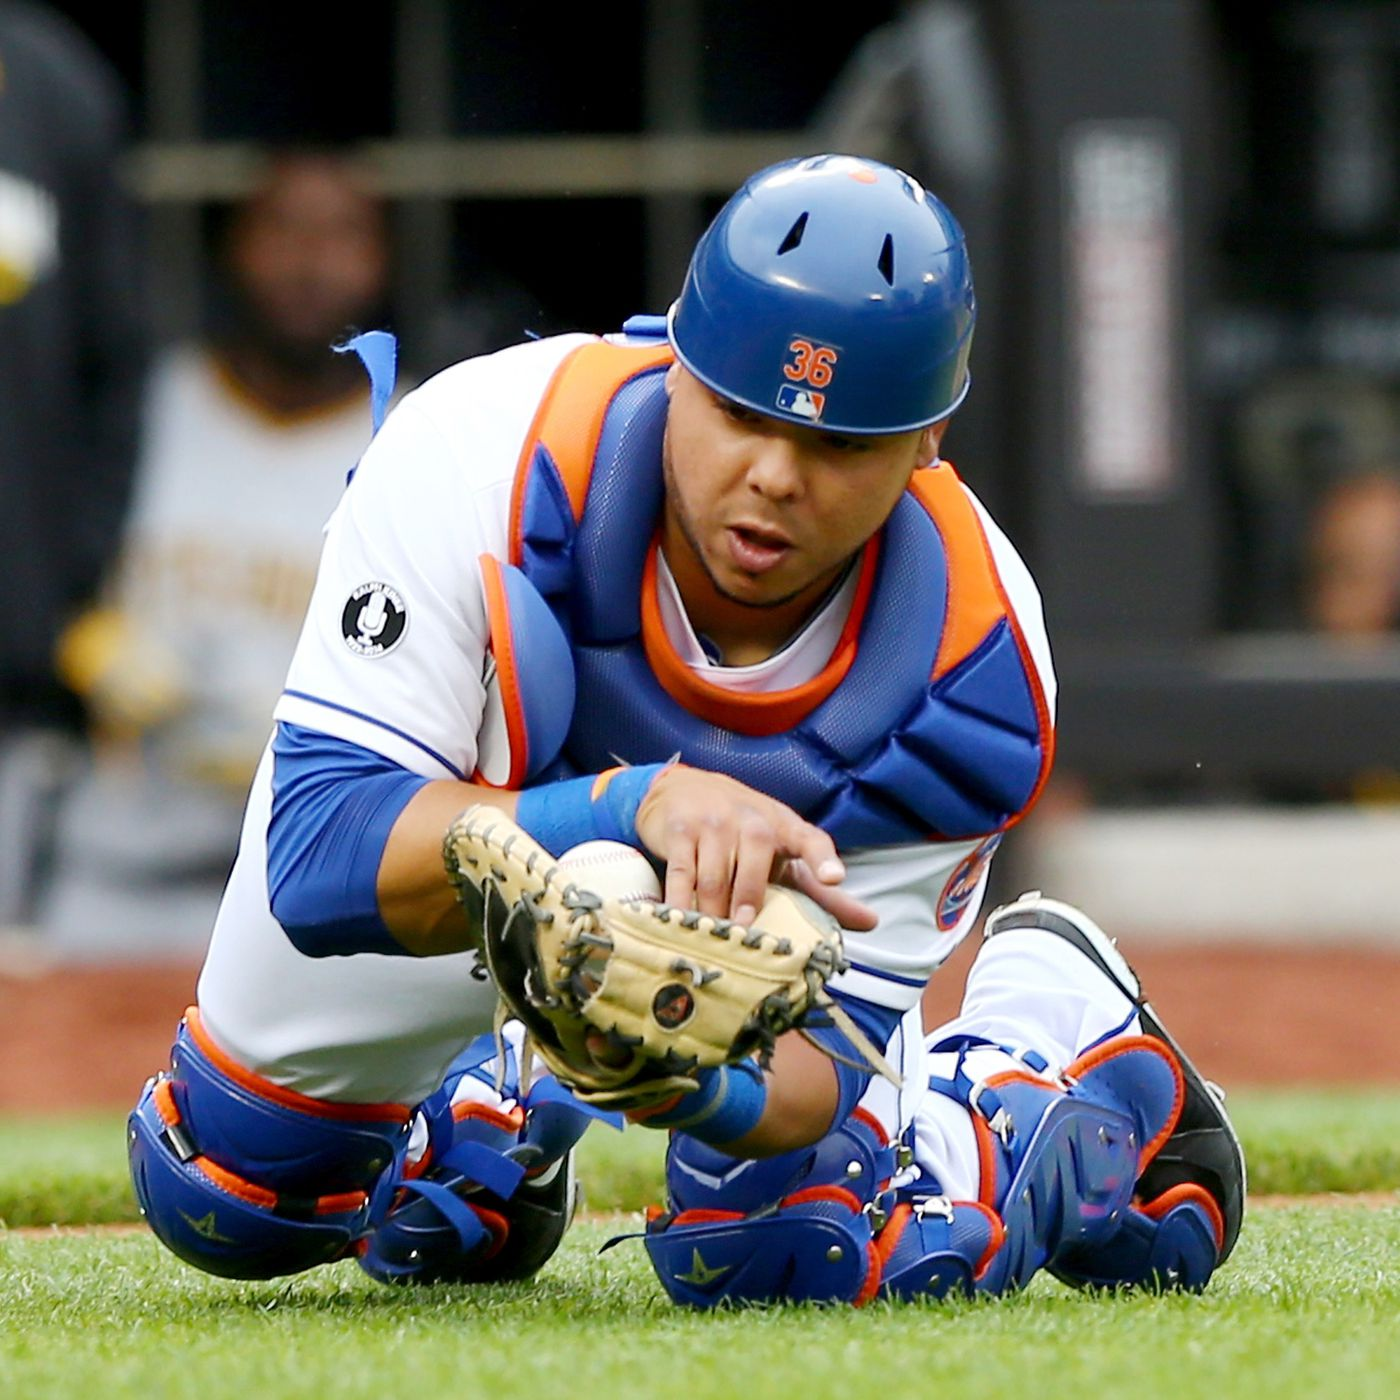 brand new 3749f cd63c Brewers claim Juan Centeno off waivers from Mets - Amazin ...